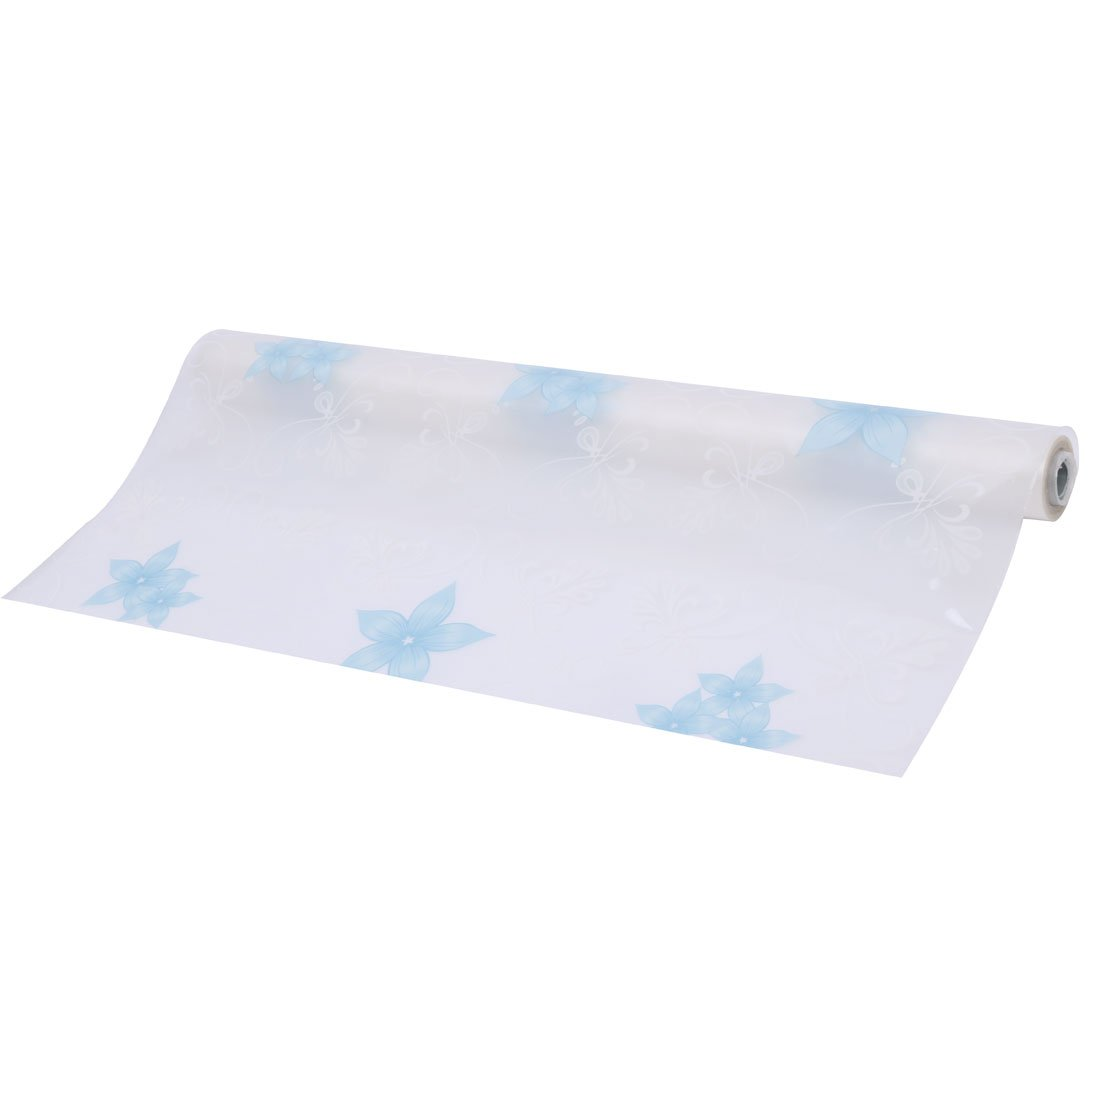 Home & Garden Bath Mats Special Price Minimalism Dolphin Anti Bacteria Pvc Bathroom Antiskid Mat Pad